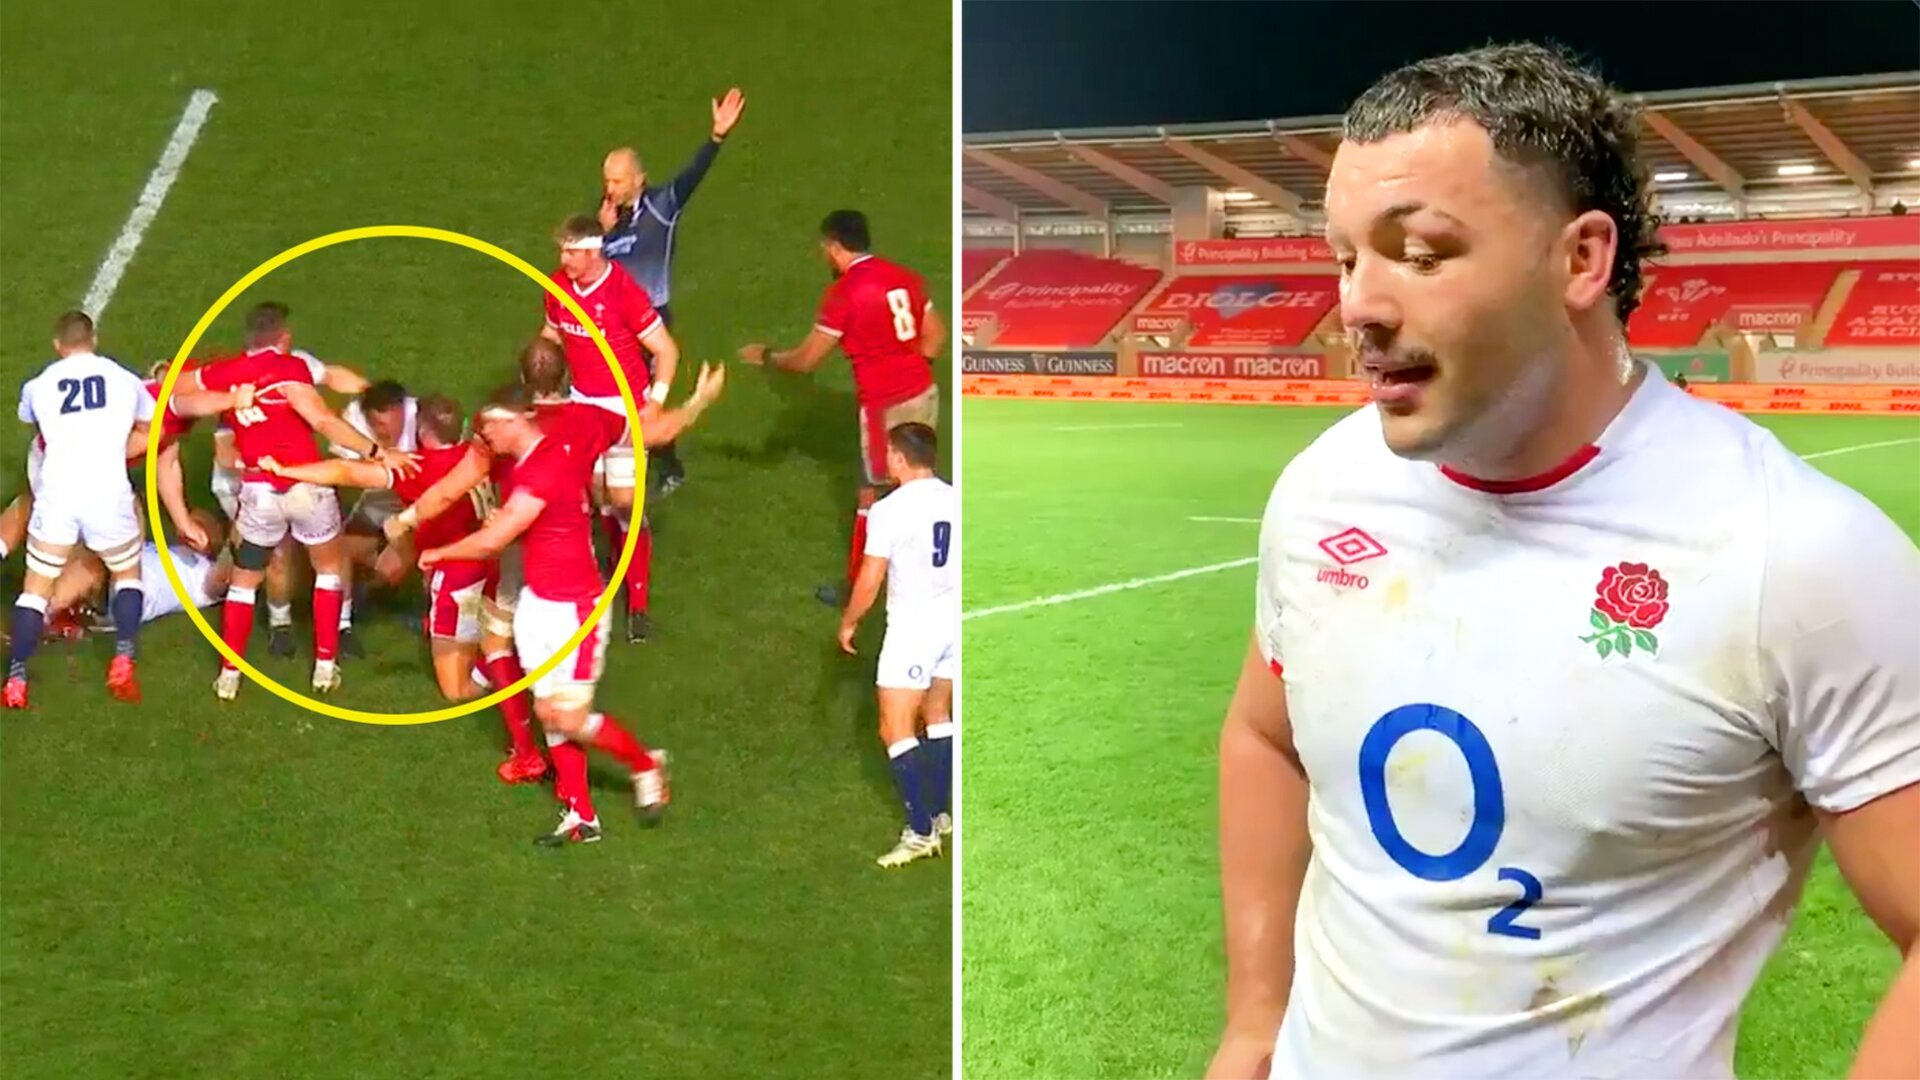 Ellis Genge gives post-match response after claims of head-butt against Wales